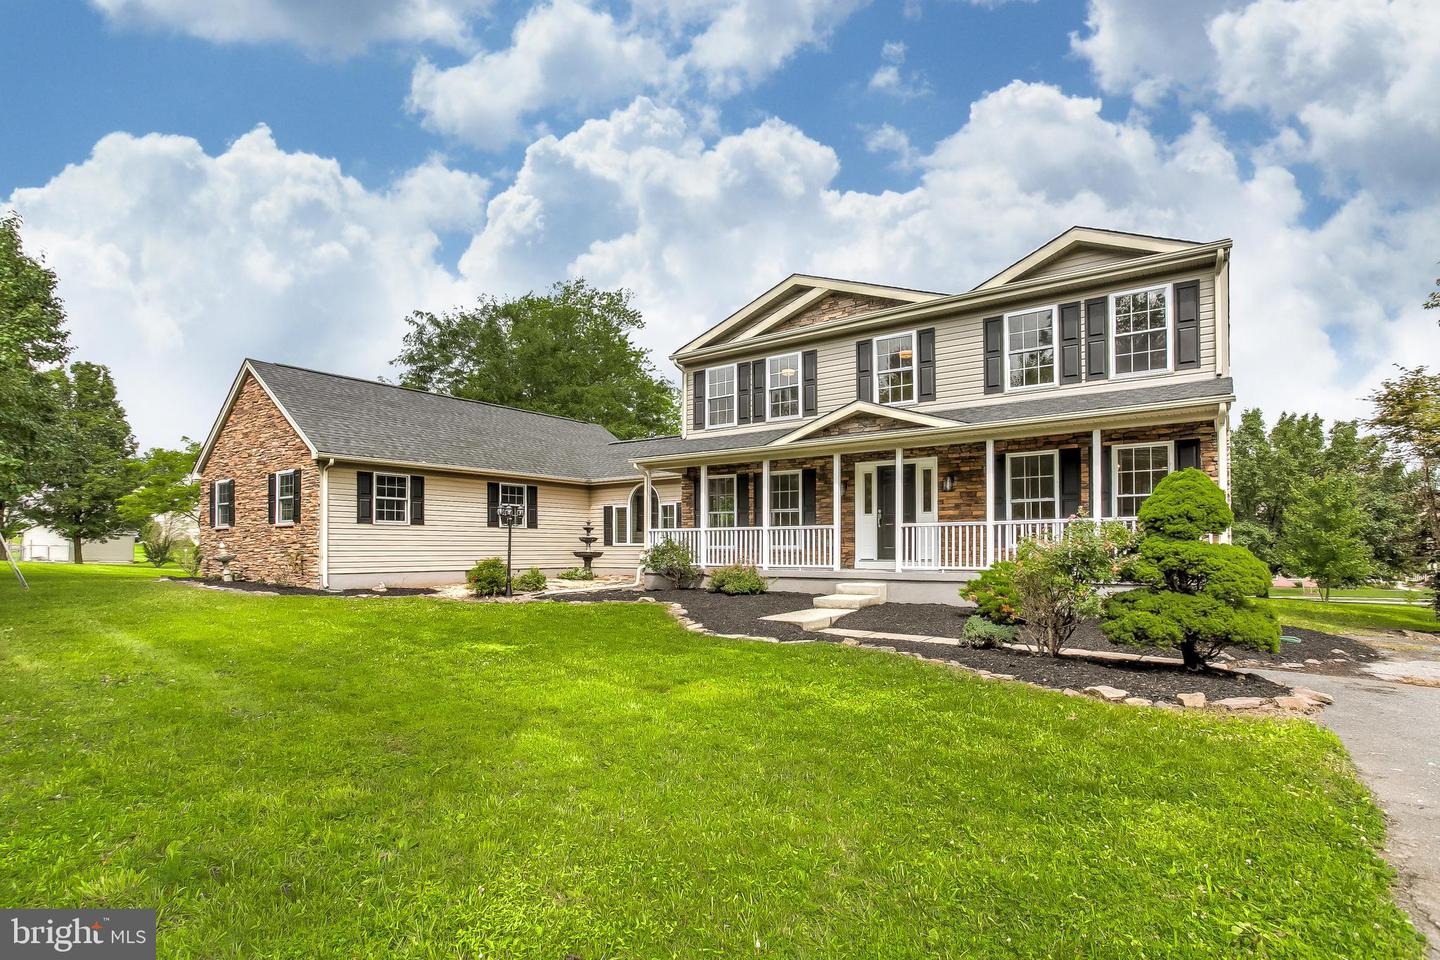 9808 HIDDEN VALLEY RD, PERRY HALL, MD 21128